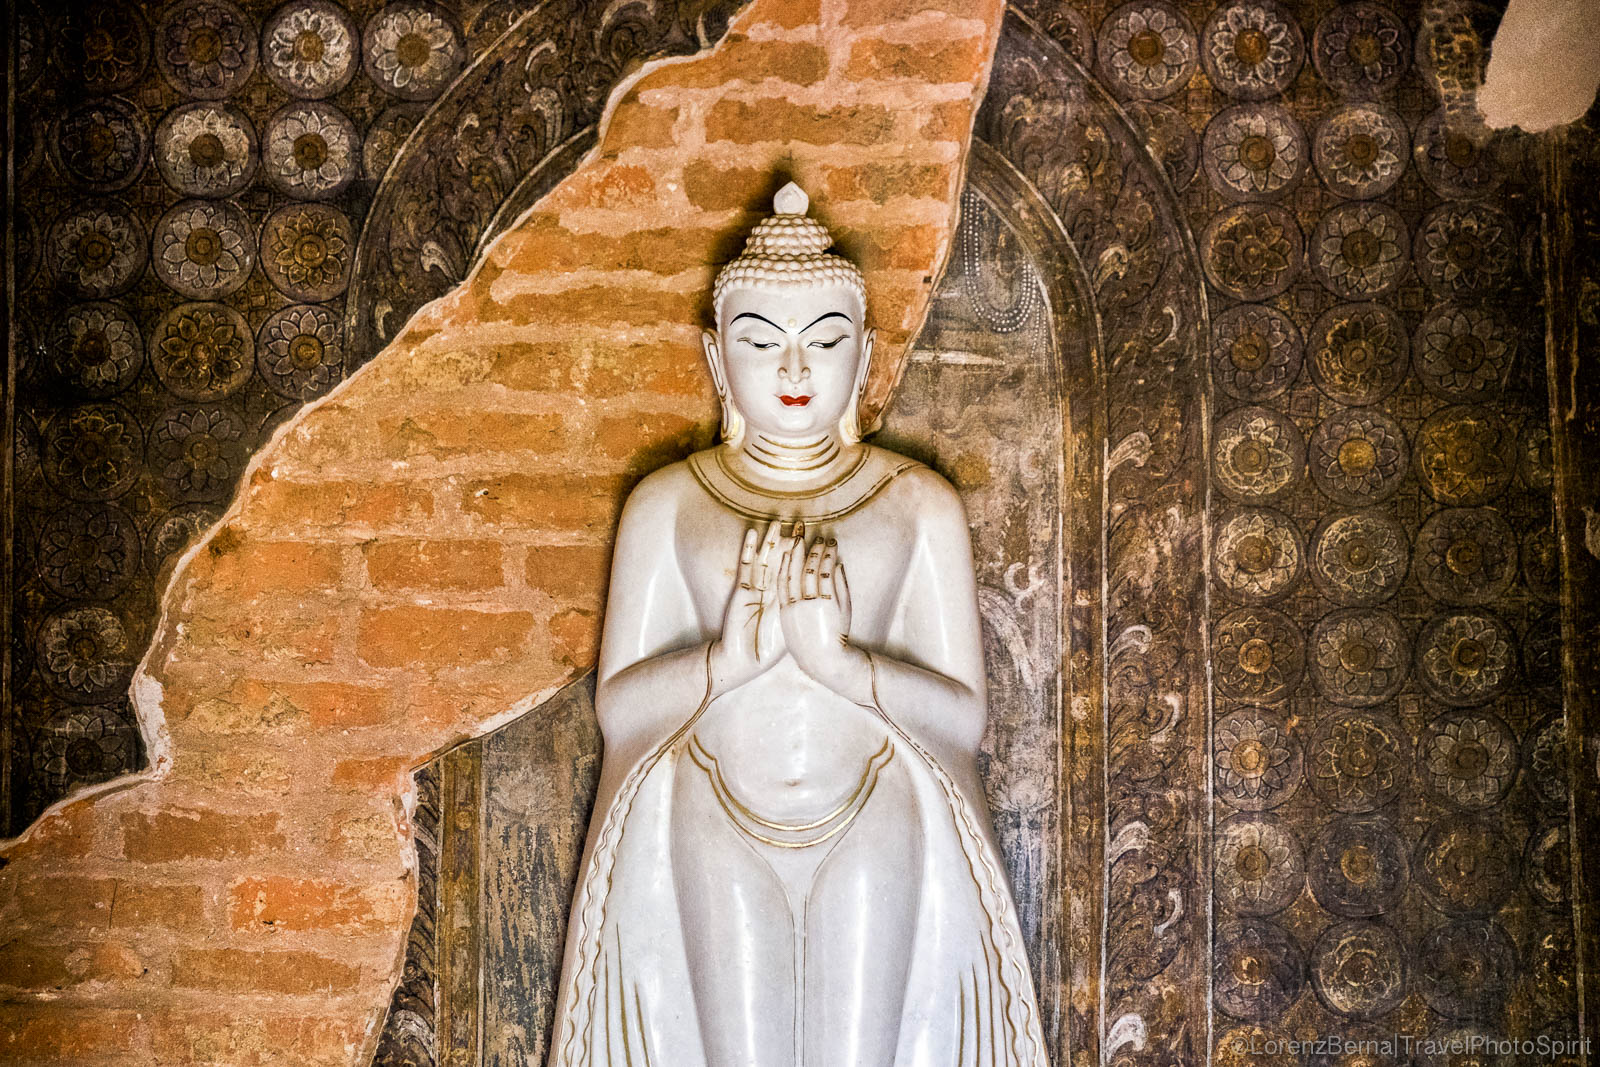 Detail of a statue of Buddha set along an old painted wall inside some pagoda.